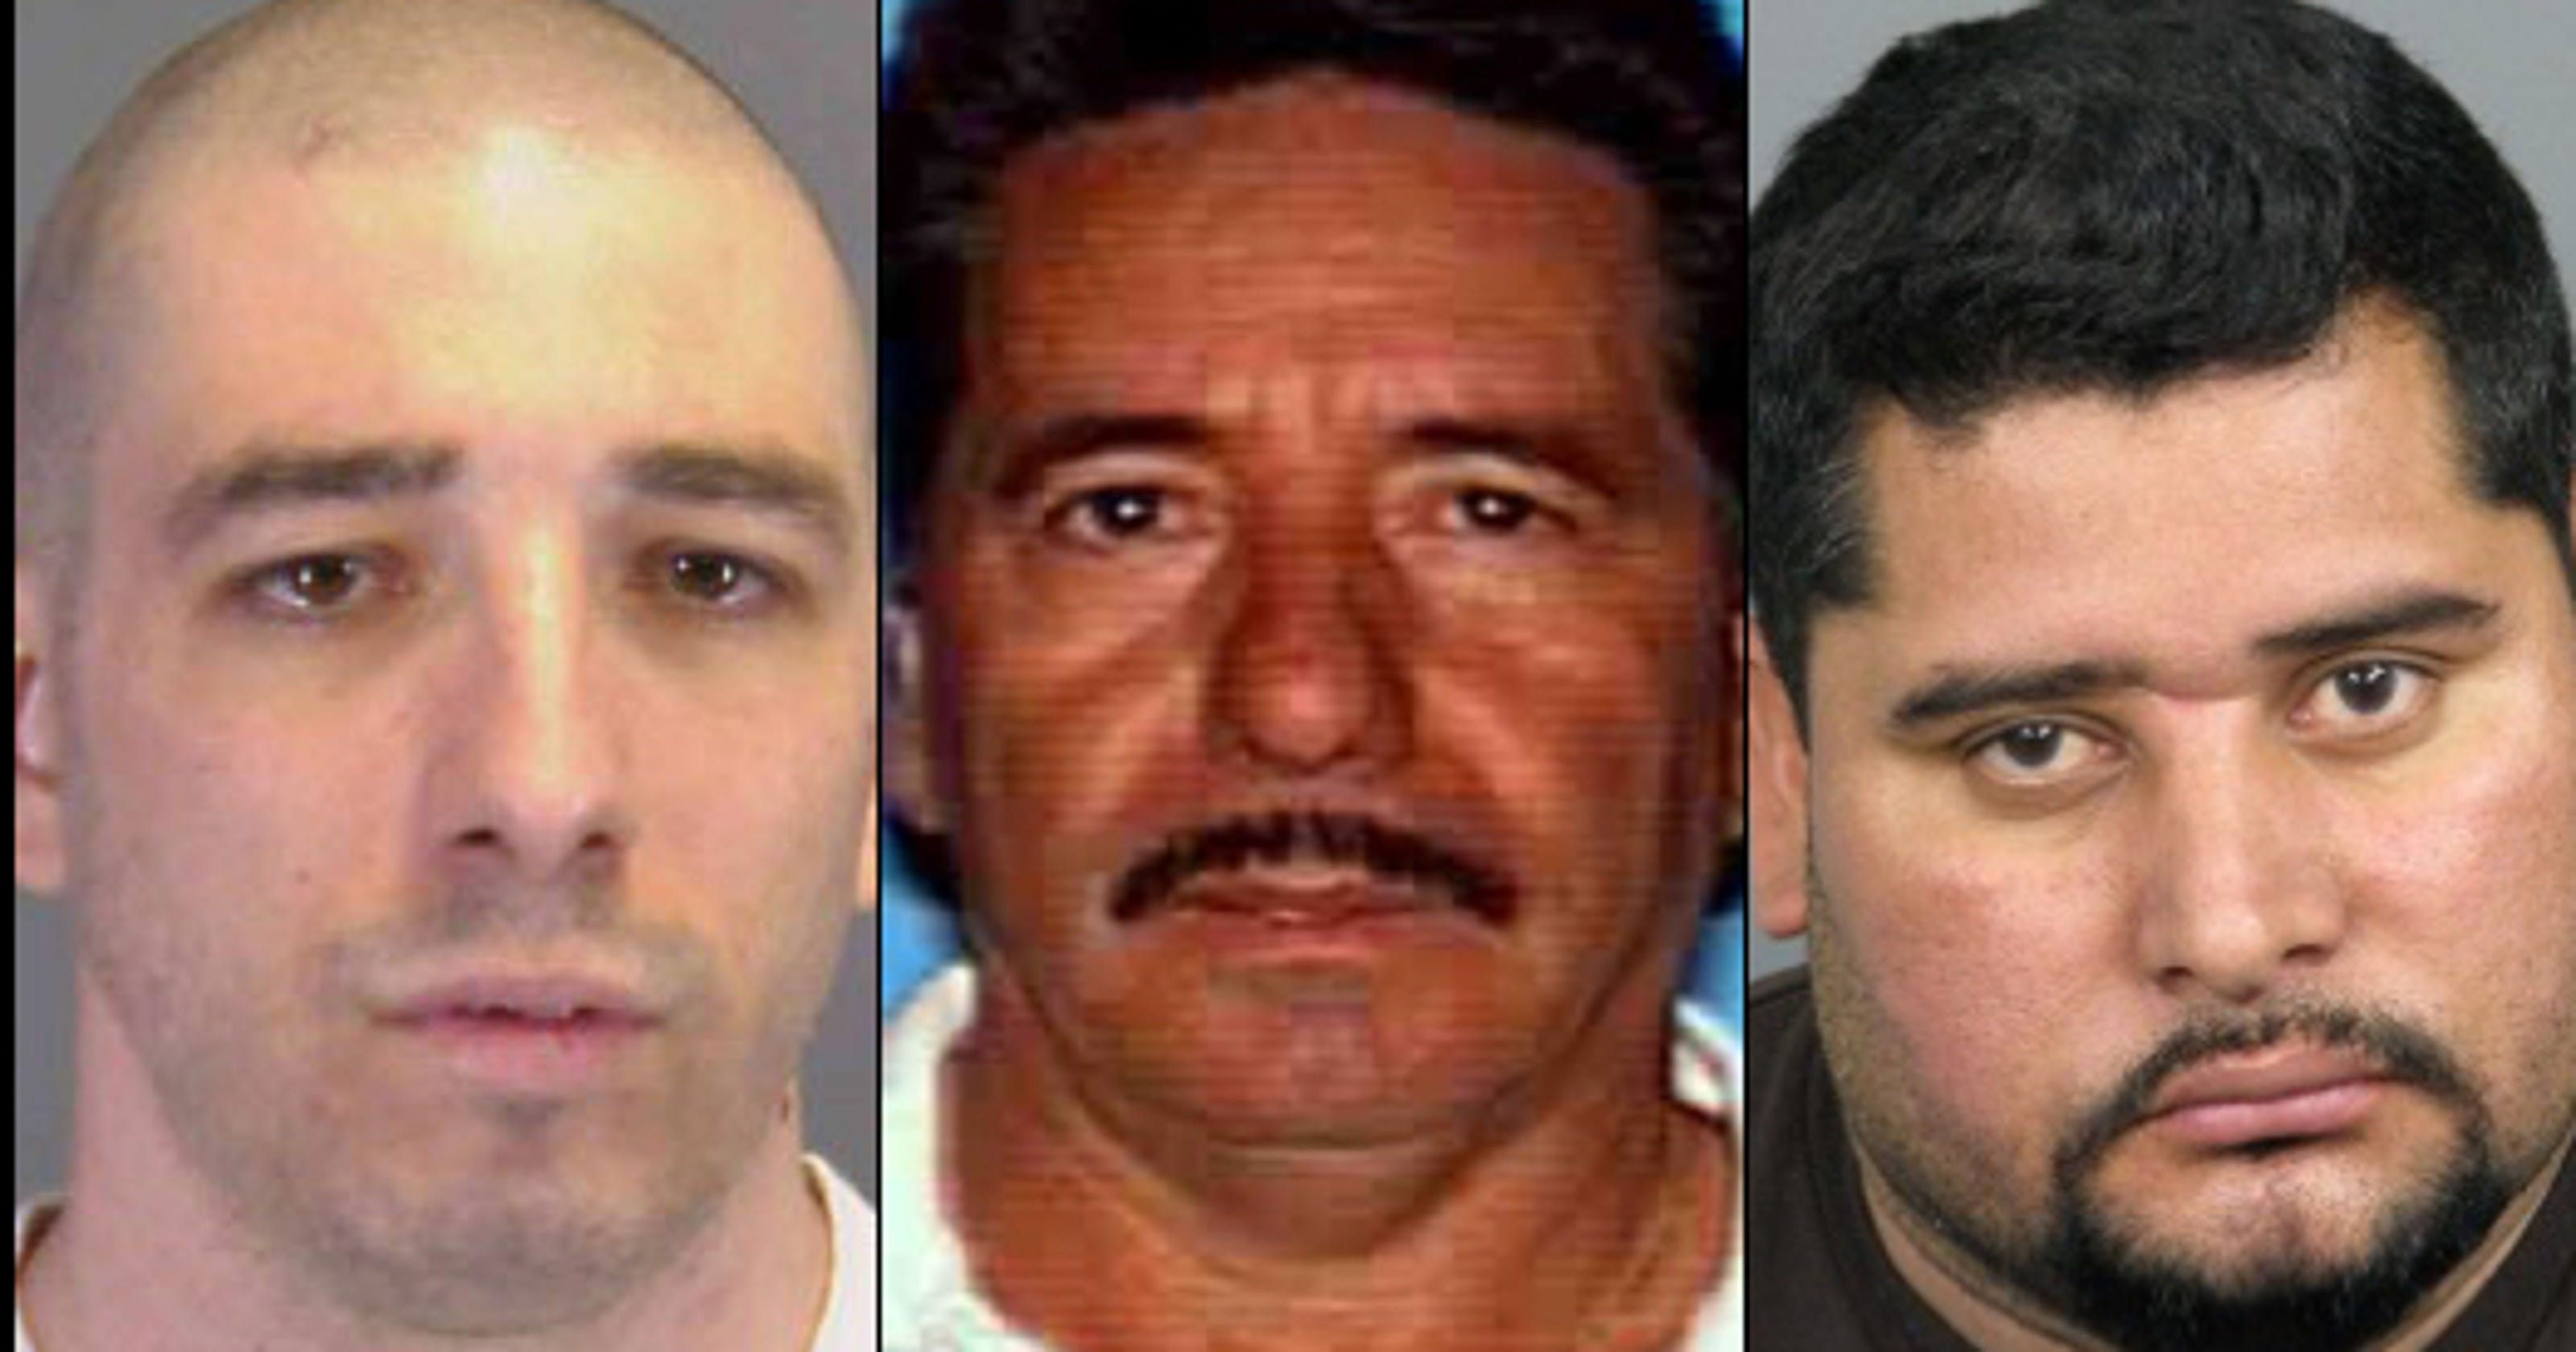 Some Riverside County fugitives are not as wanted